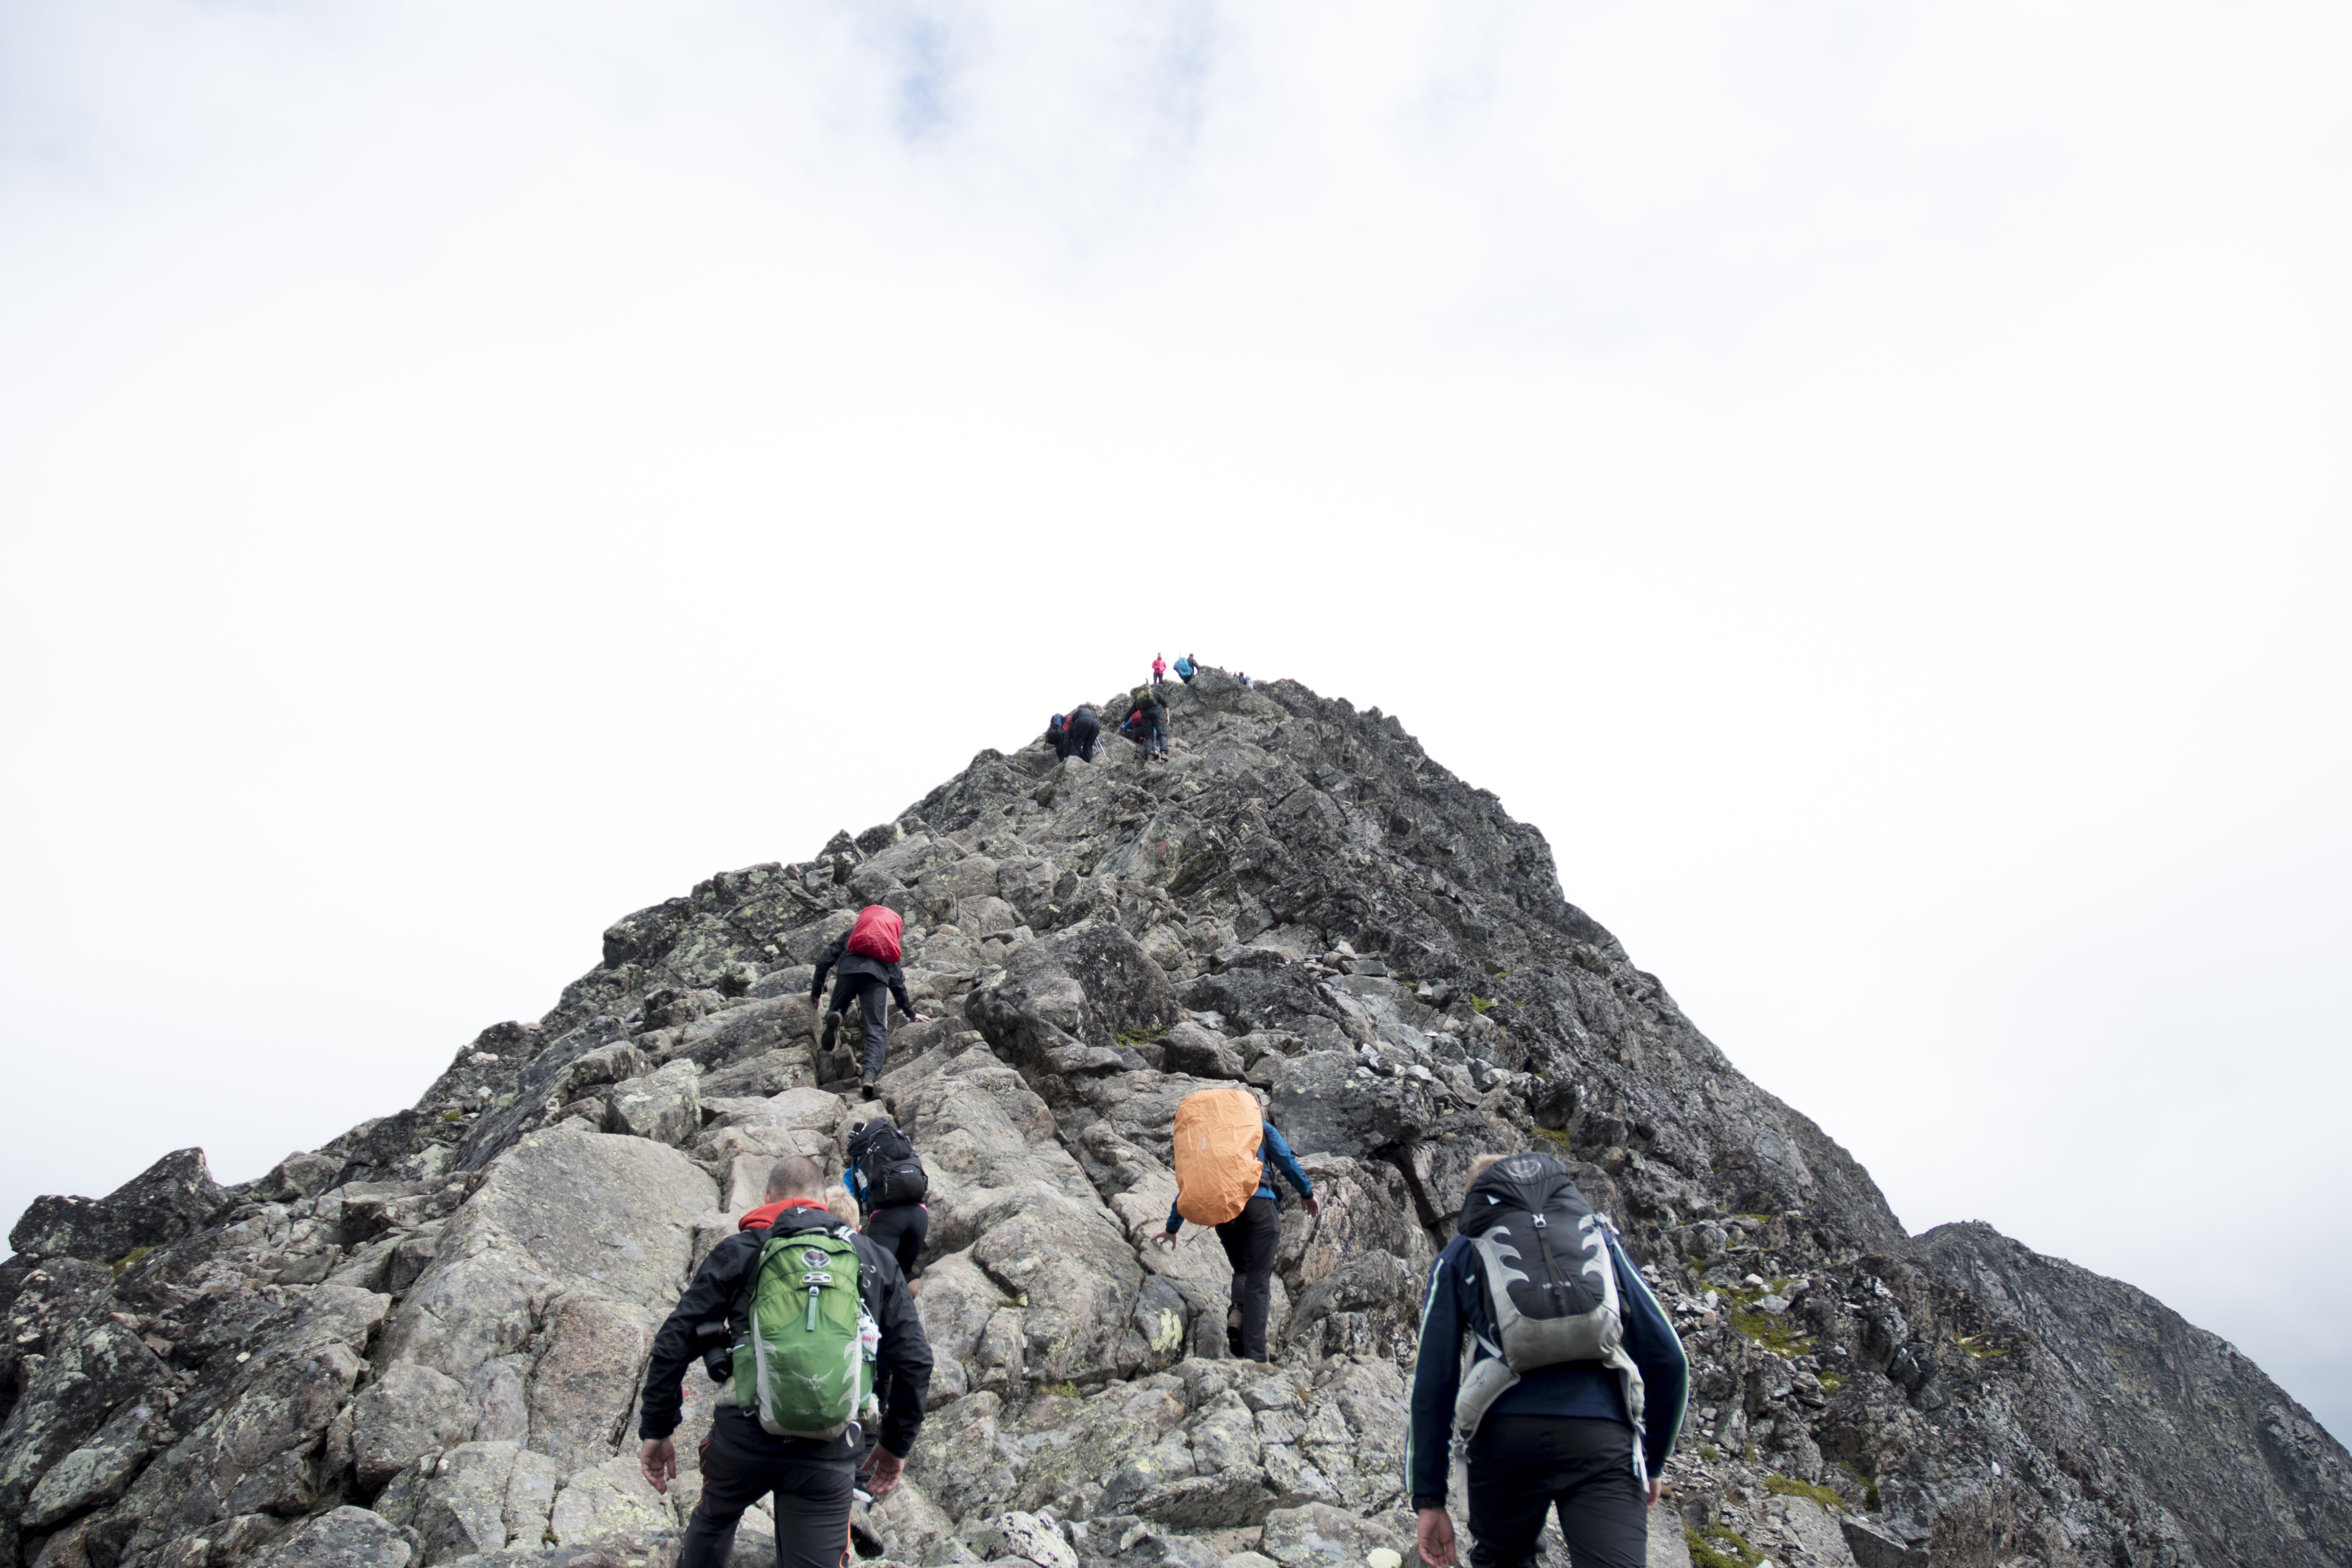 Hikers with backpacks summiting peaks of mountain